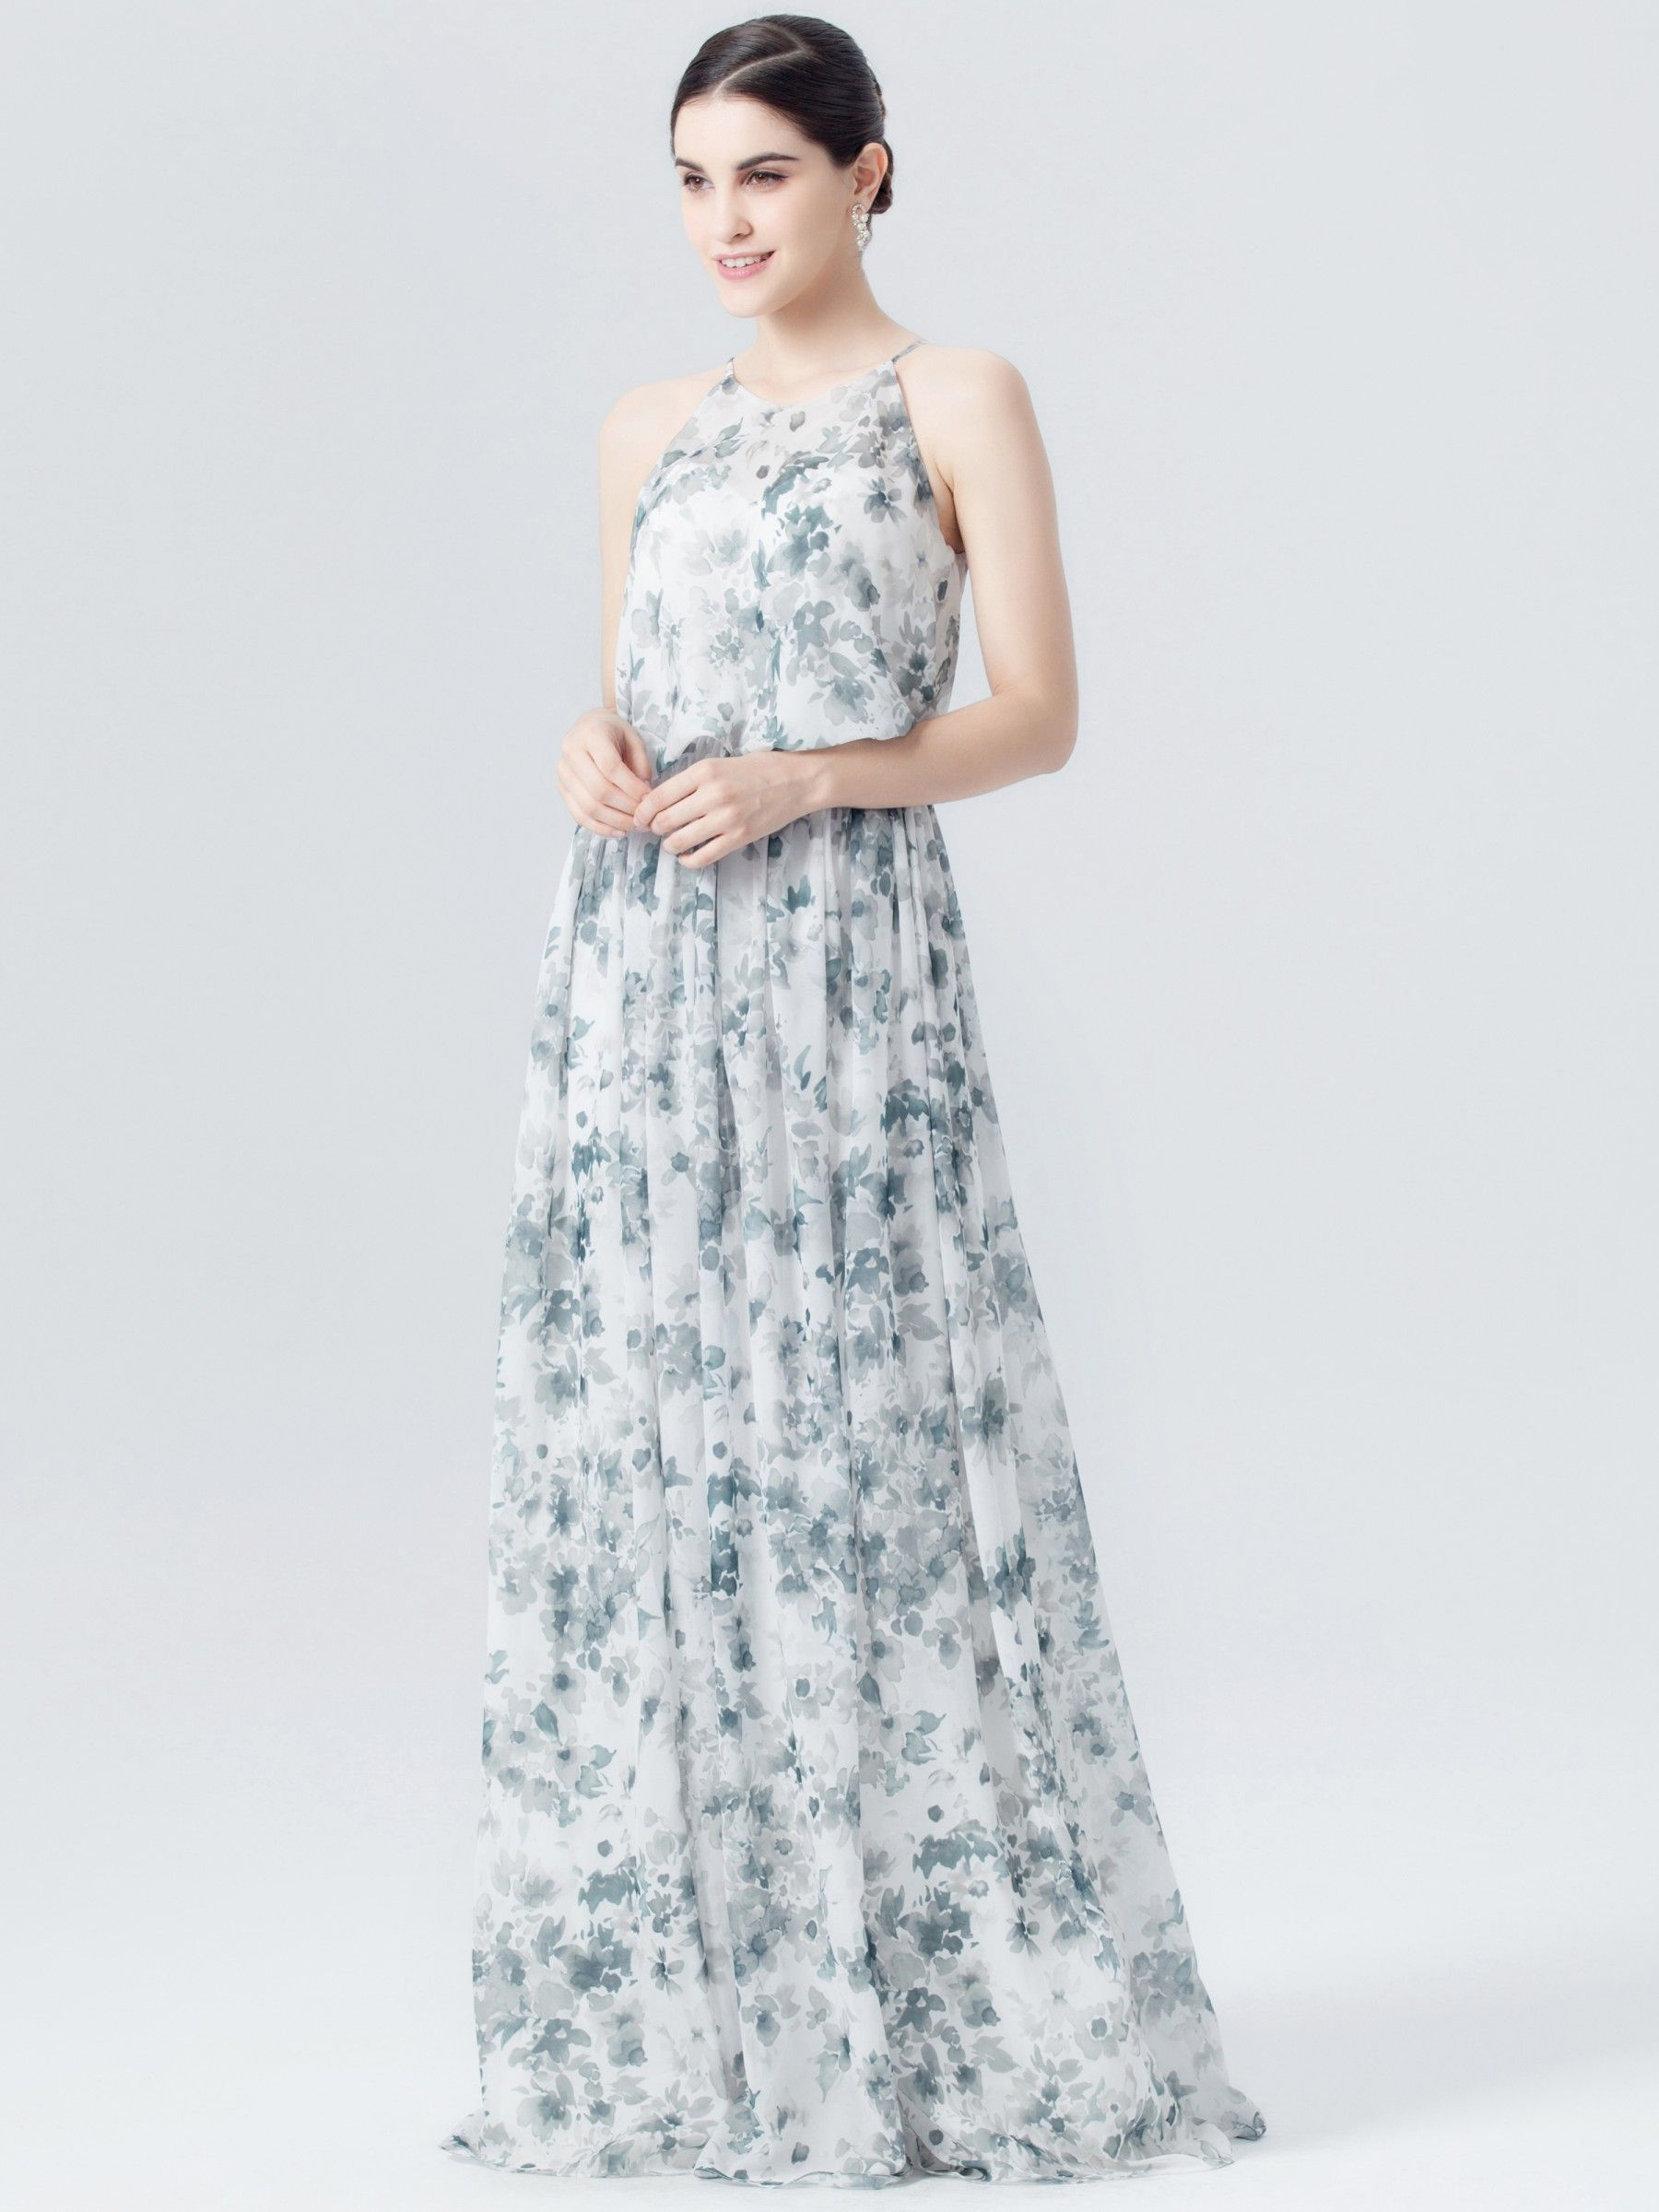 Floral print wedding dresses  Maxi Teal Floral Print Dress  Plus and Petite sizes available